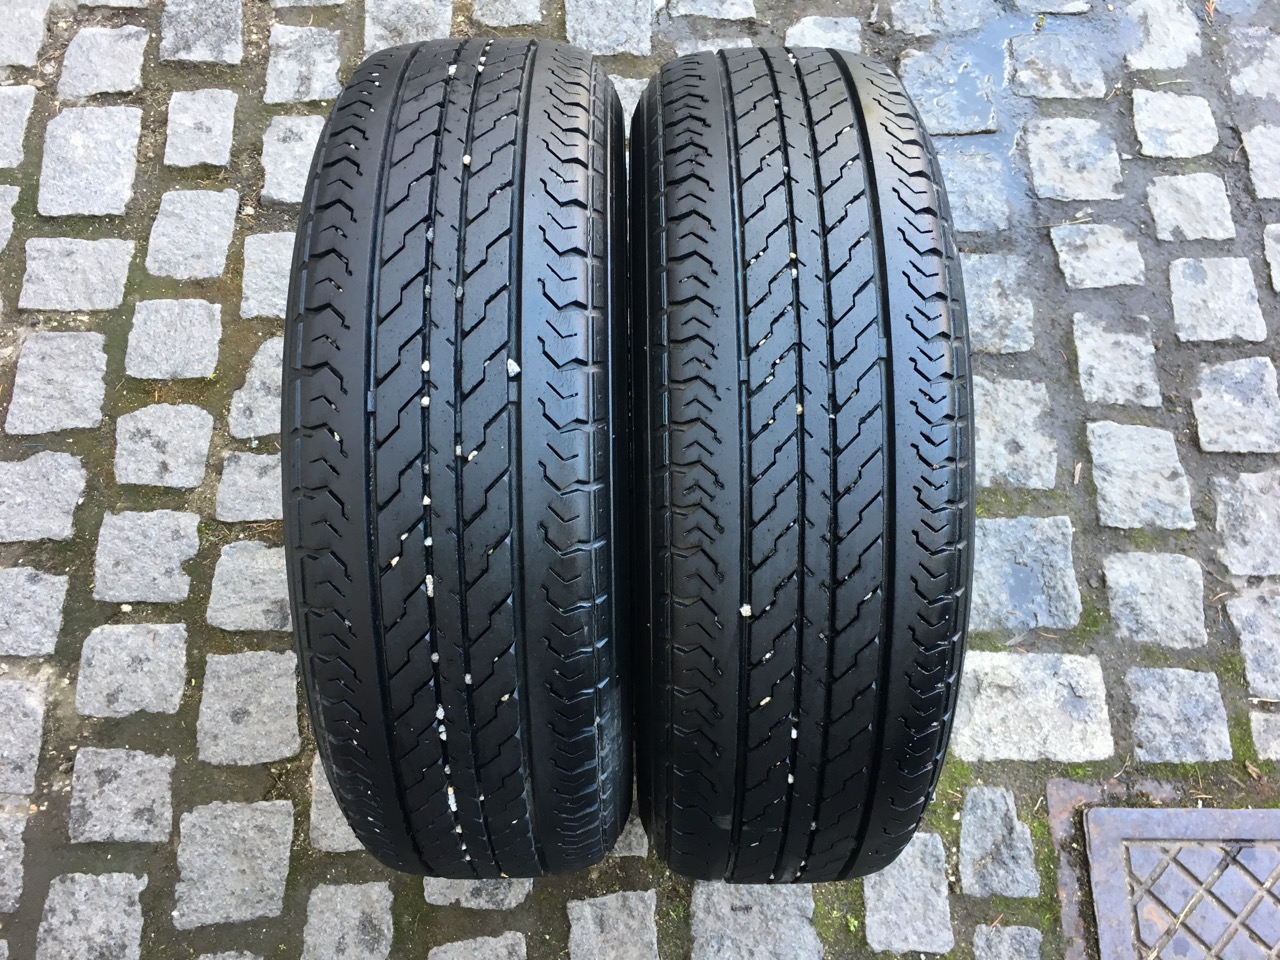 Raidal  TrailerMaxx 185/65/14 93-91N